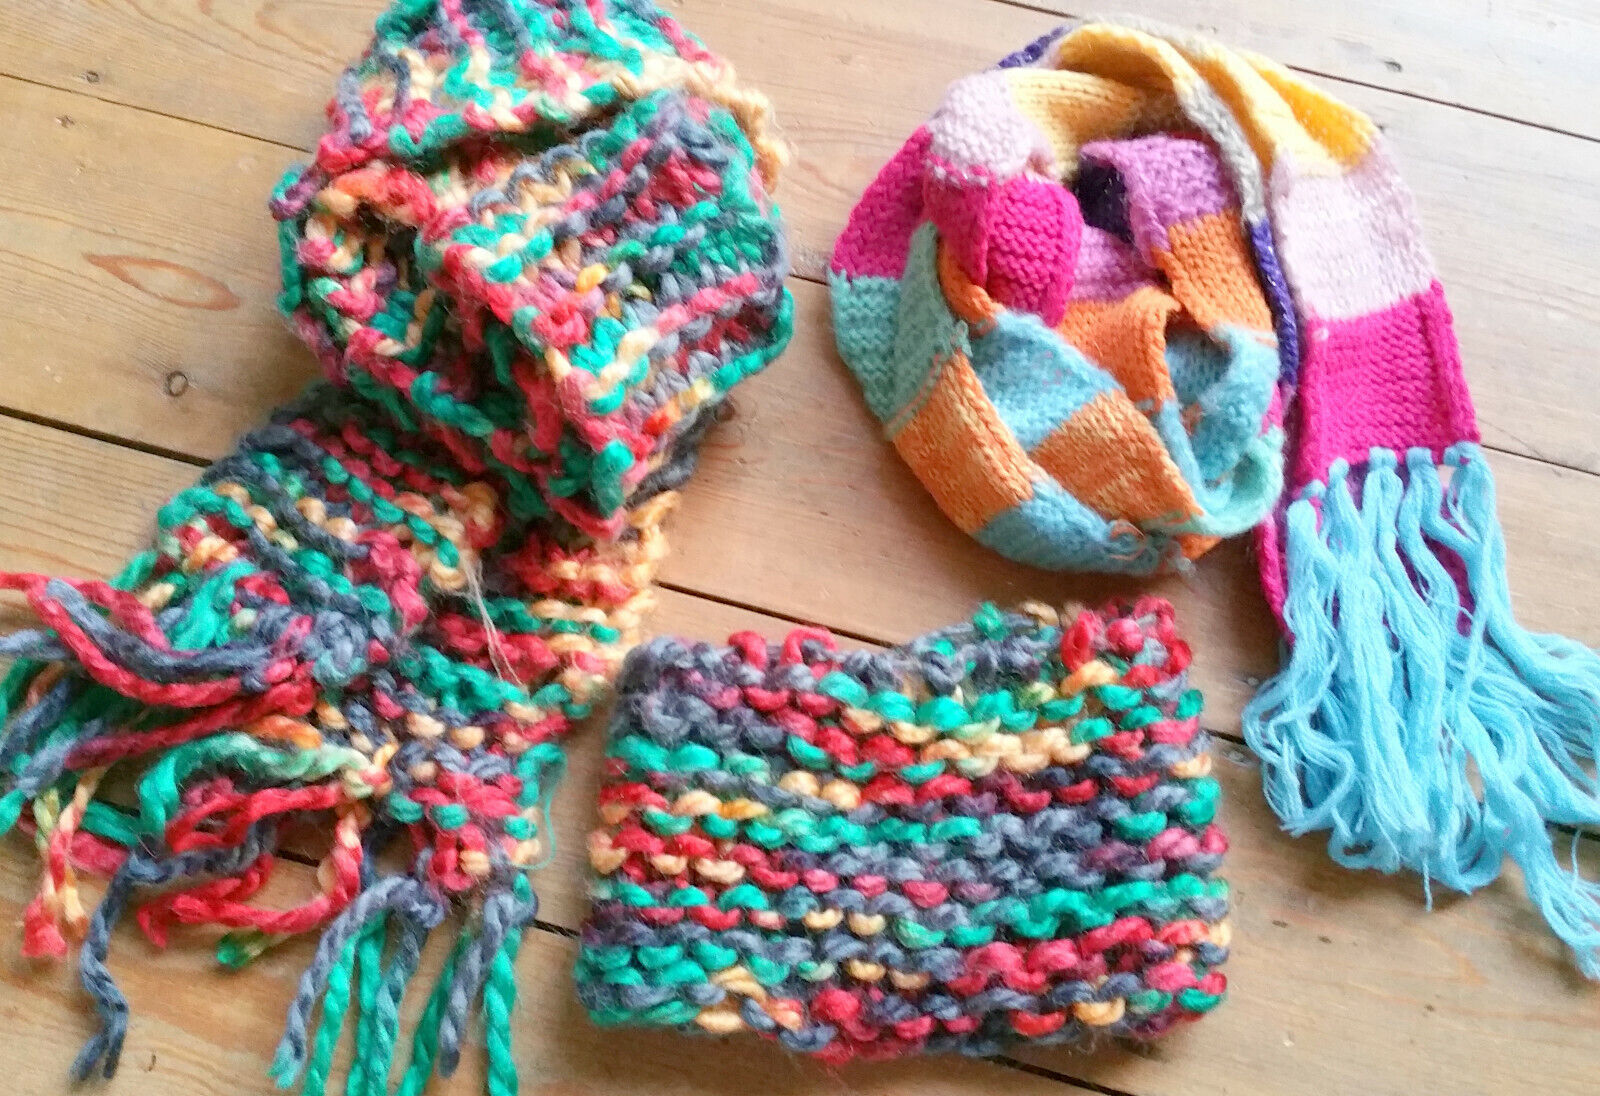 Cosmogirl Hand Knitted Scarves & Head Band Hat, Green Pink Yellow Blue Grey